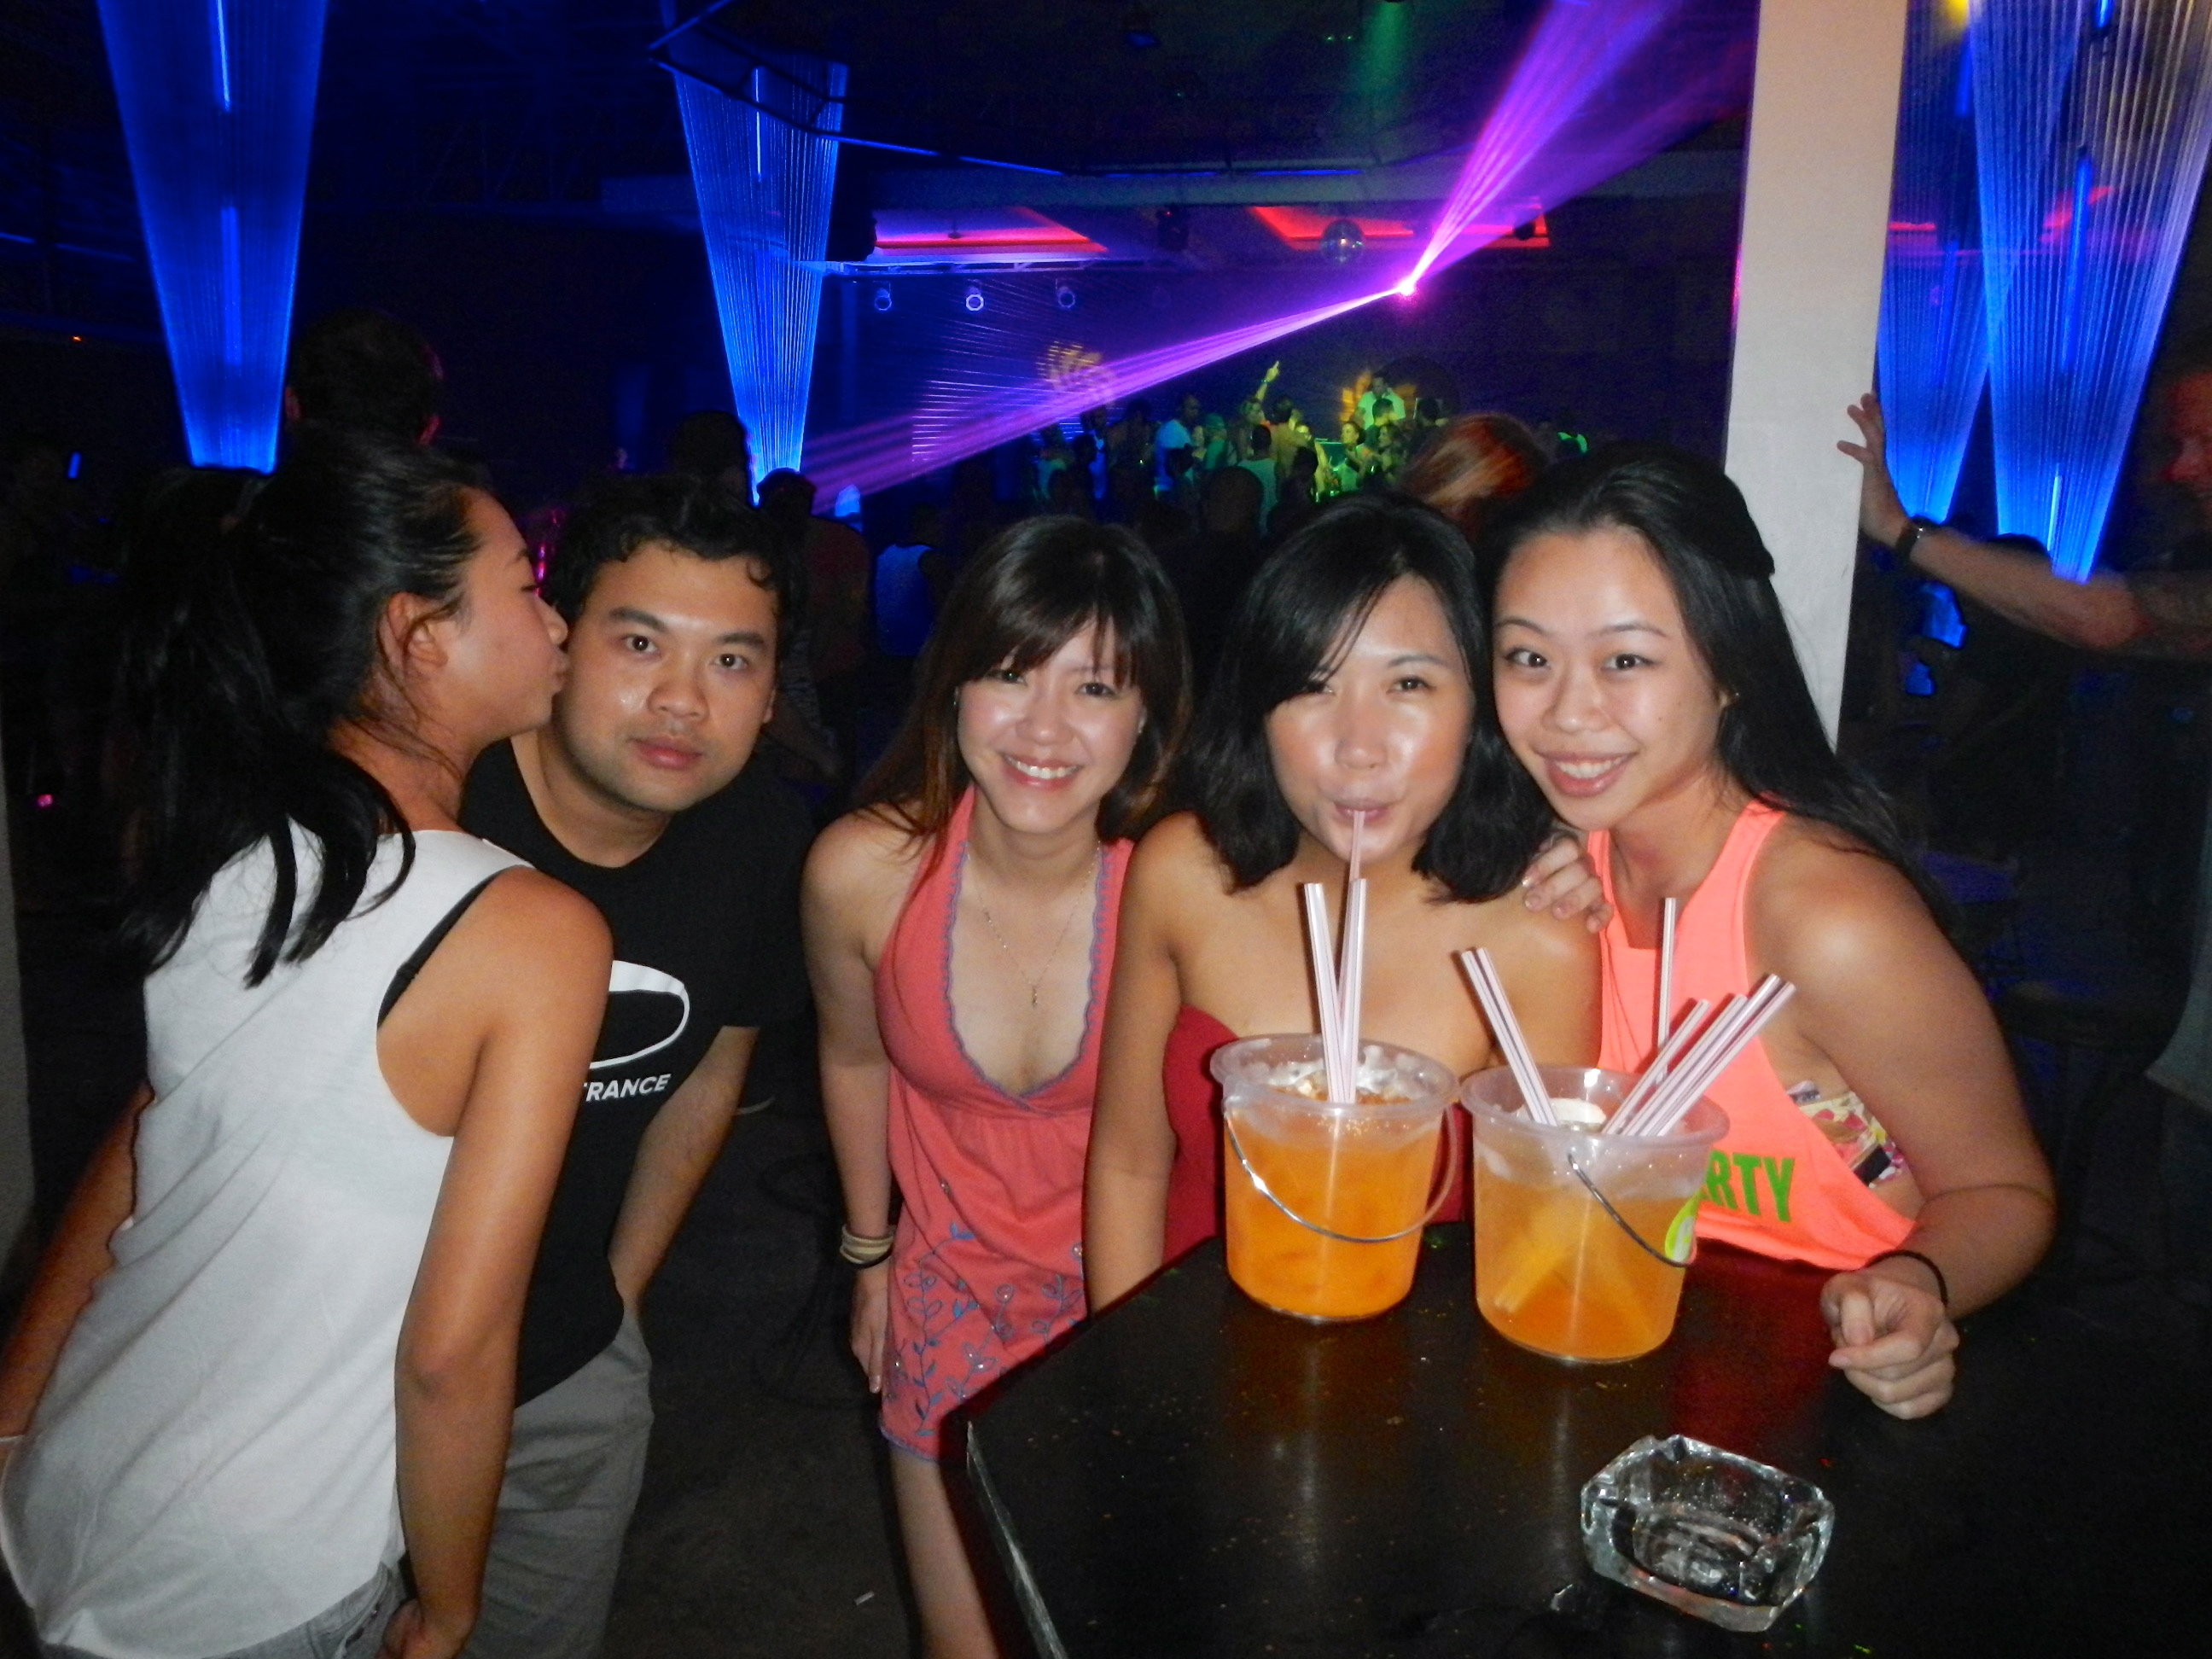 koh samui black girls personals Chaweng beach, koh samui  days after full and black moons),  once quite infamous as a bawdy area where single men came to drink hard and pick up bar girls.